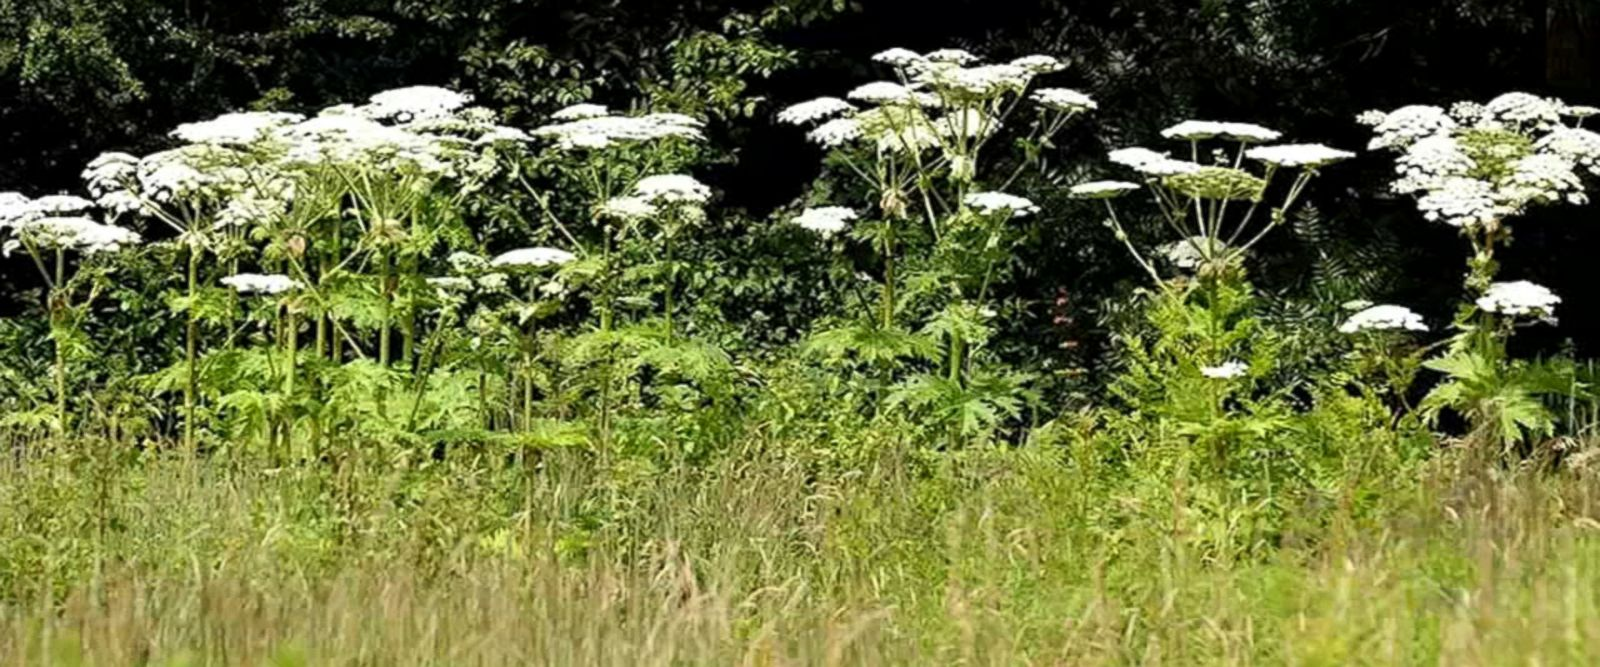 VIDEO: The danger of the giant hogweed, an invasive plant spotted in New York, Connecticut and Virginia, comes from its sap.